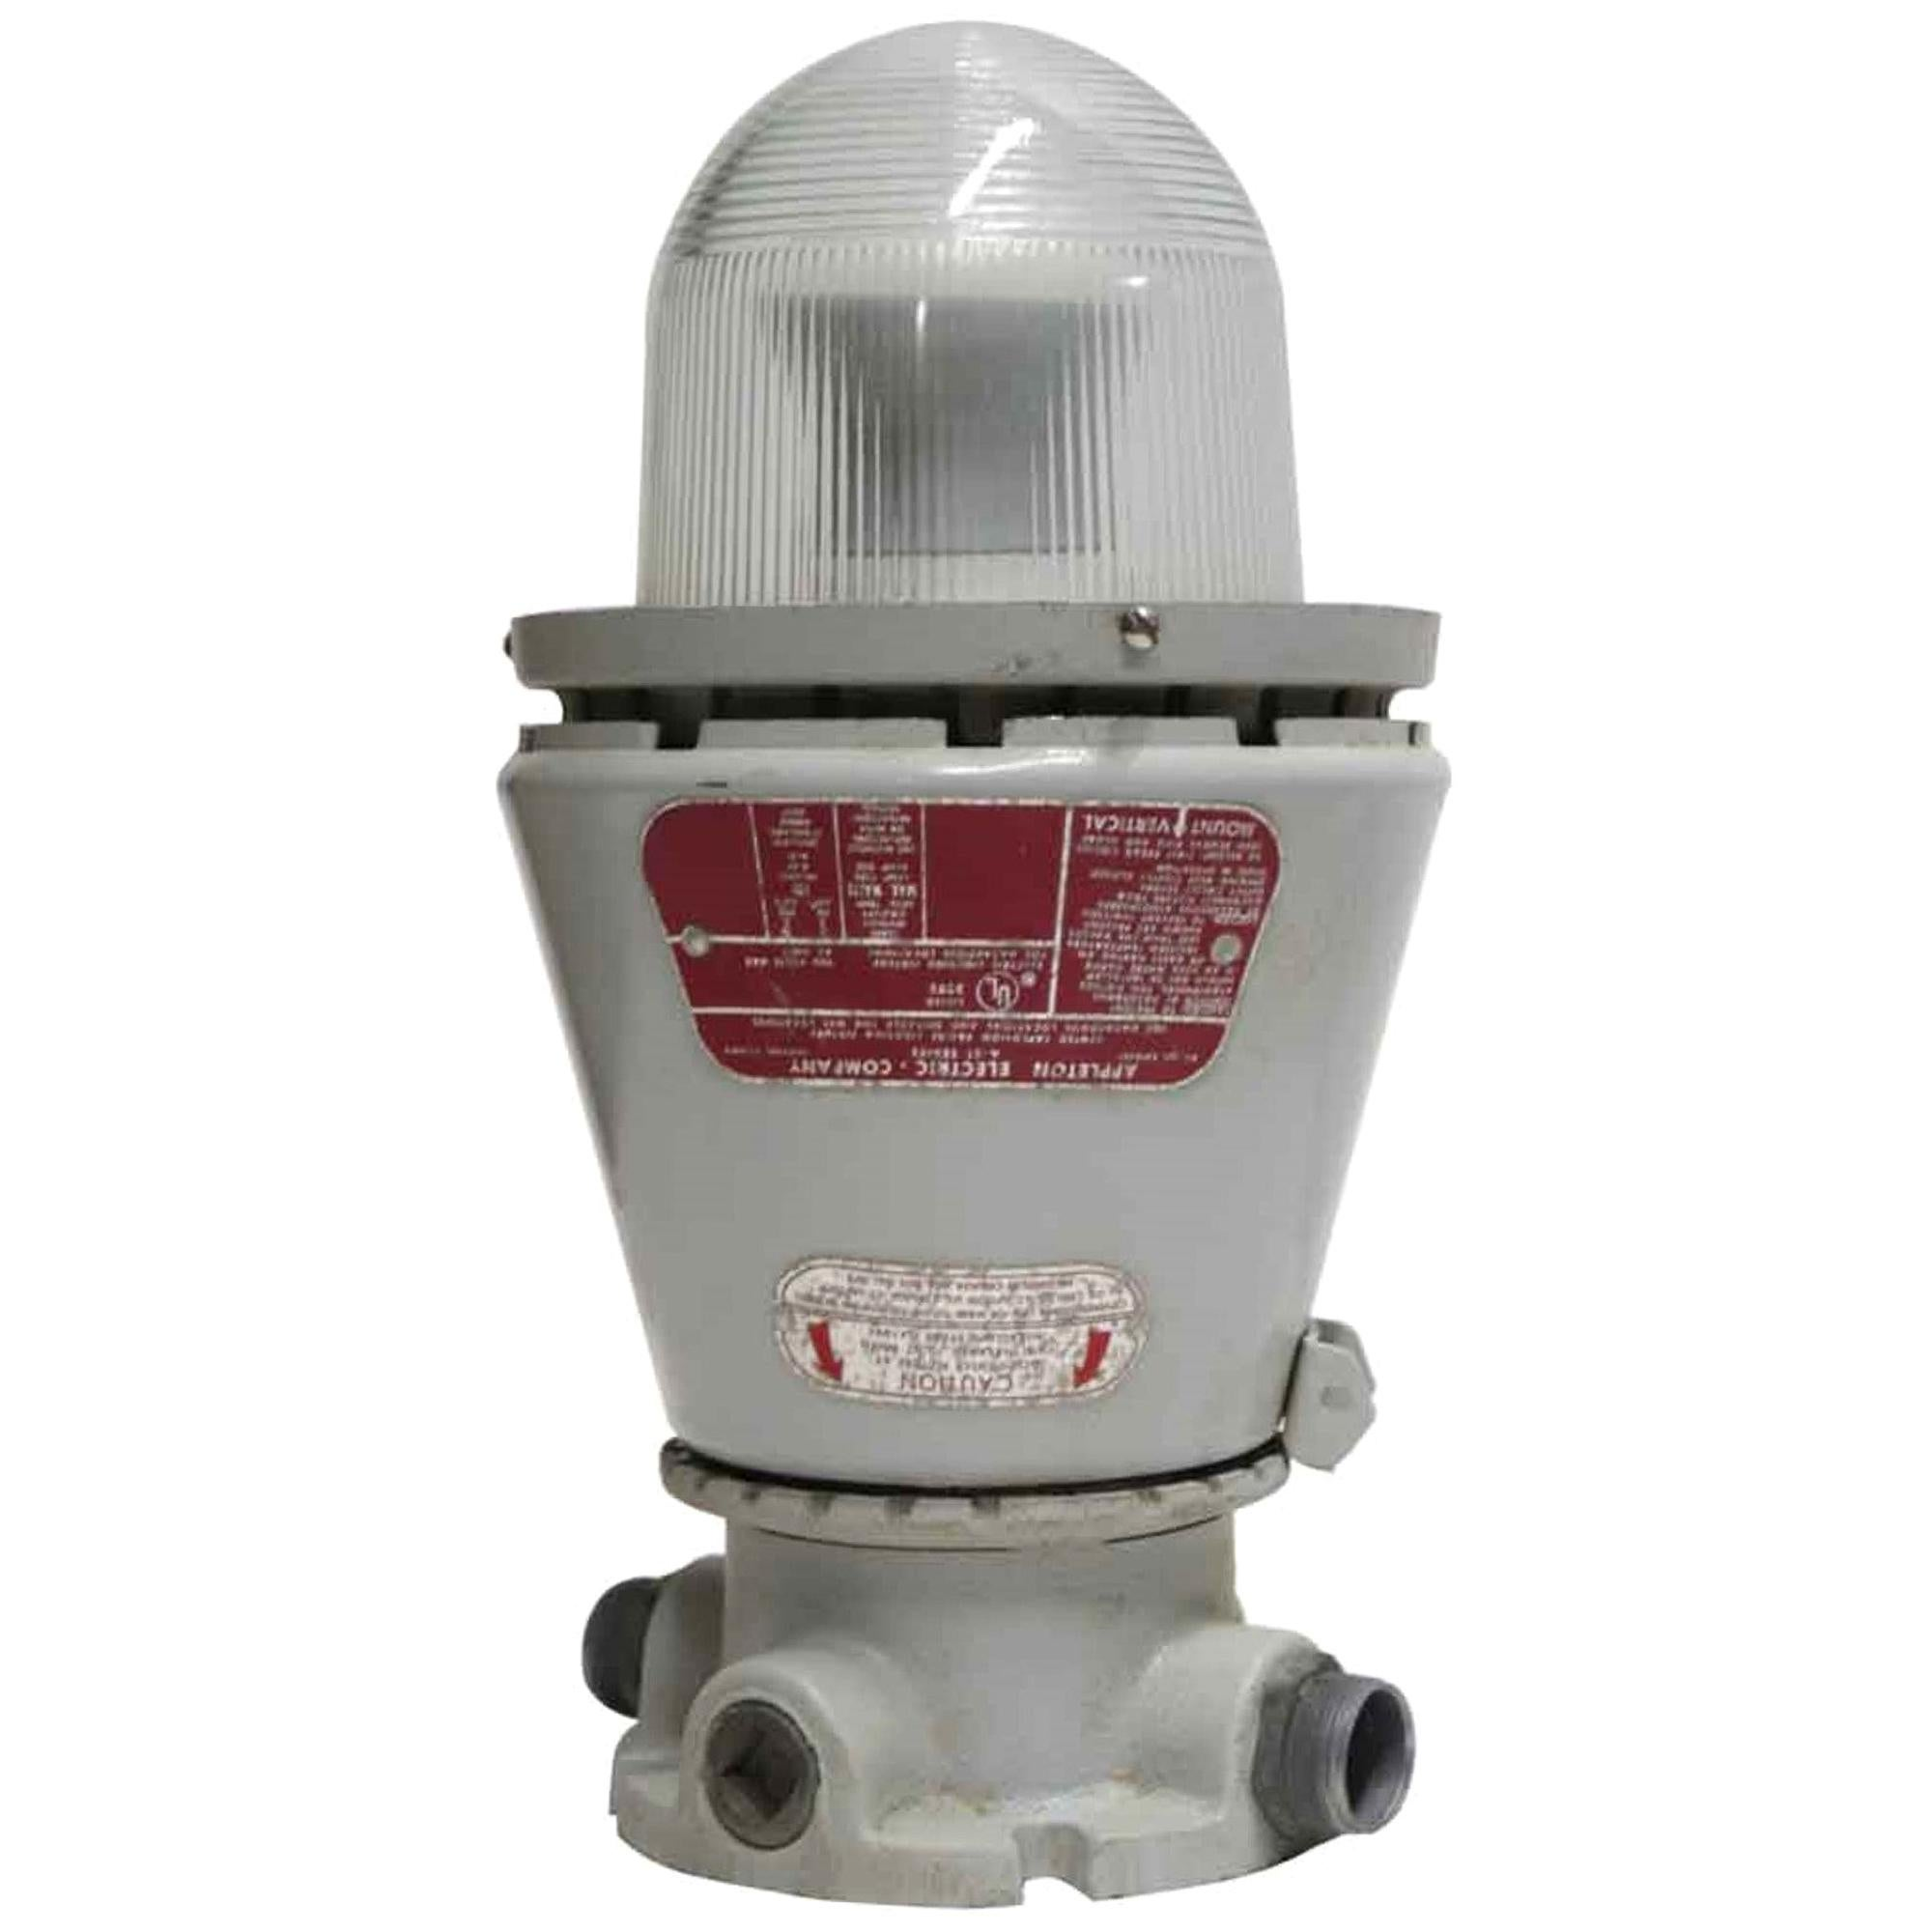 1990s Appleton A-51 Series Industrial Explosion Proof Ceiling Light